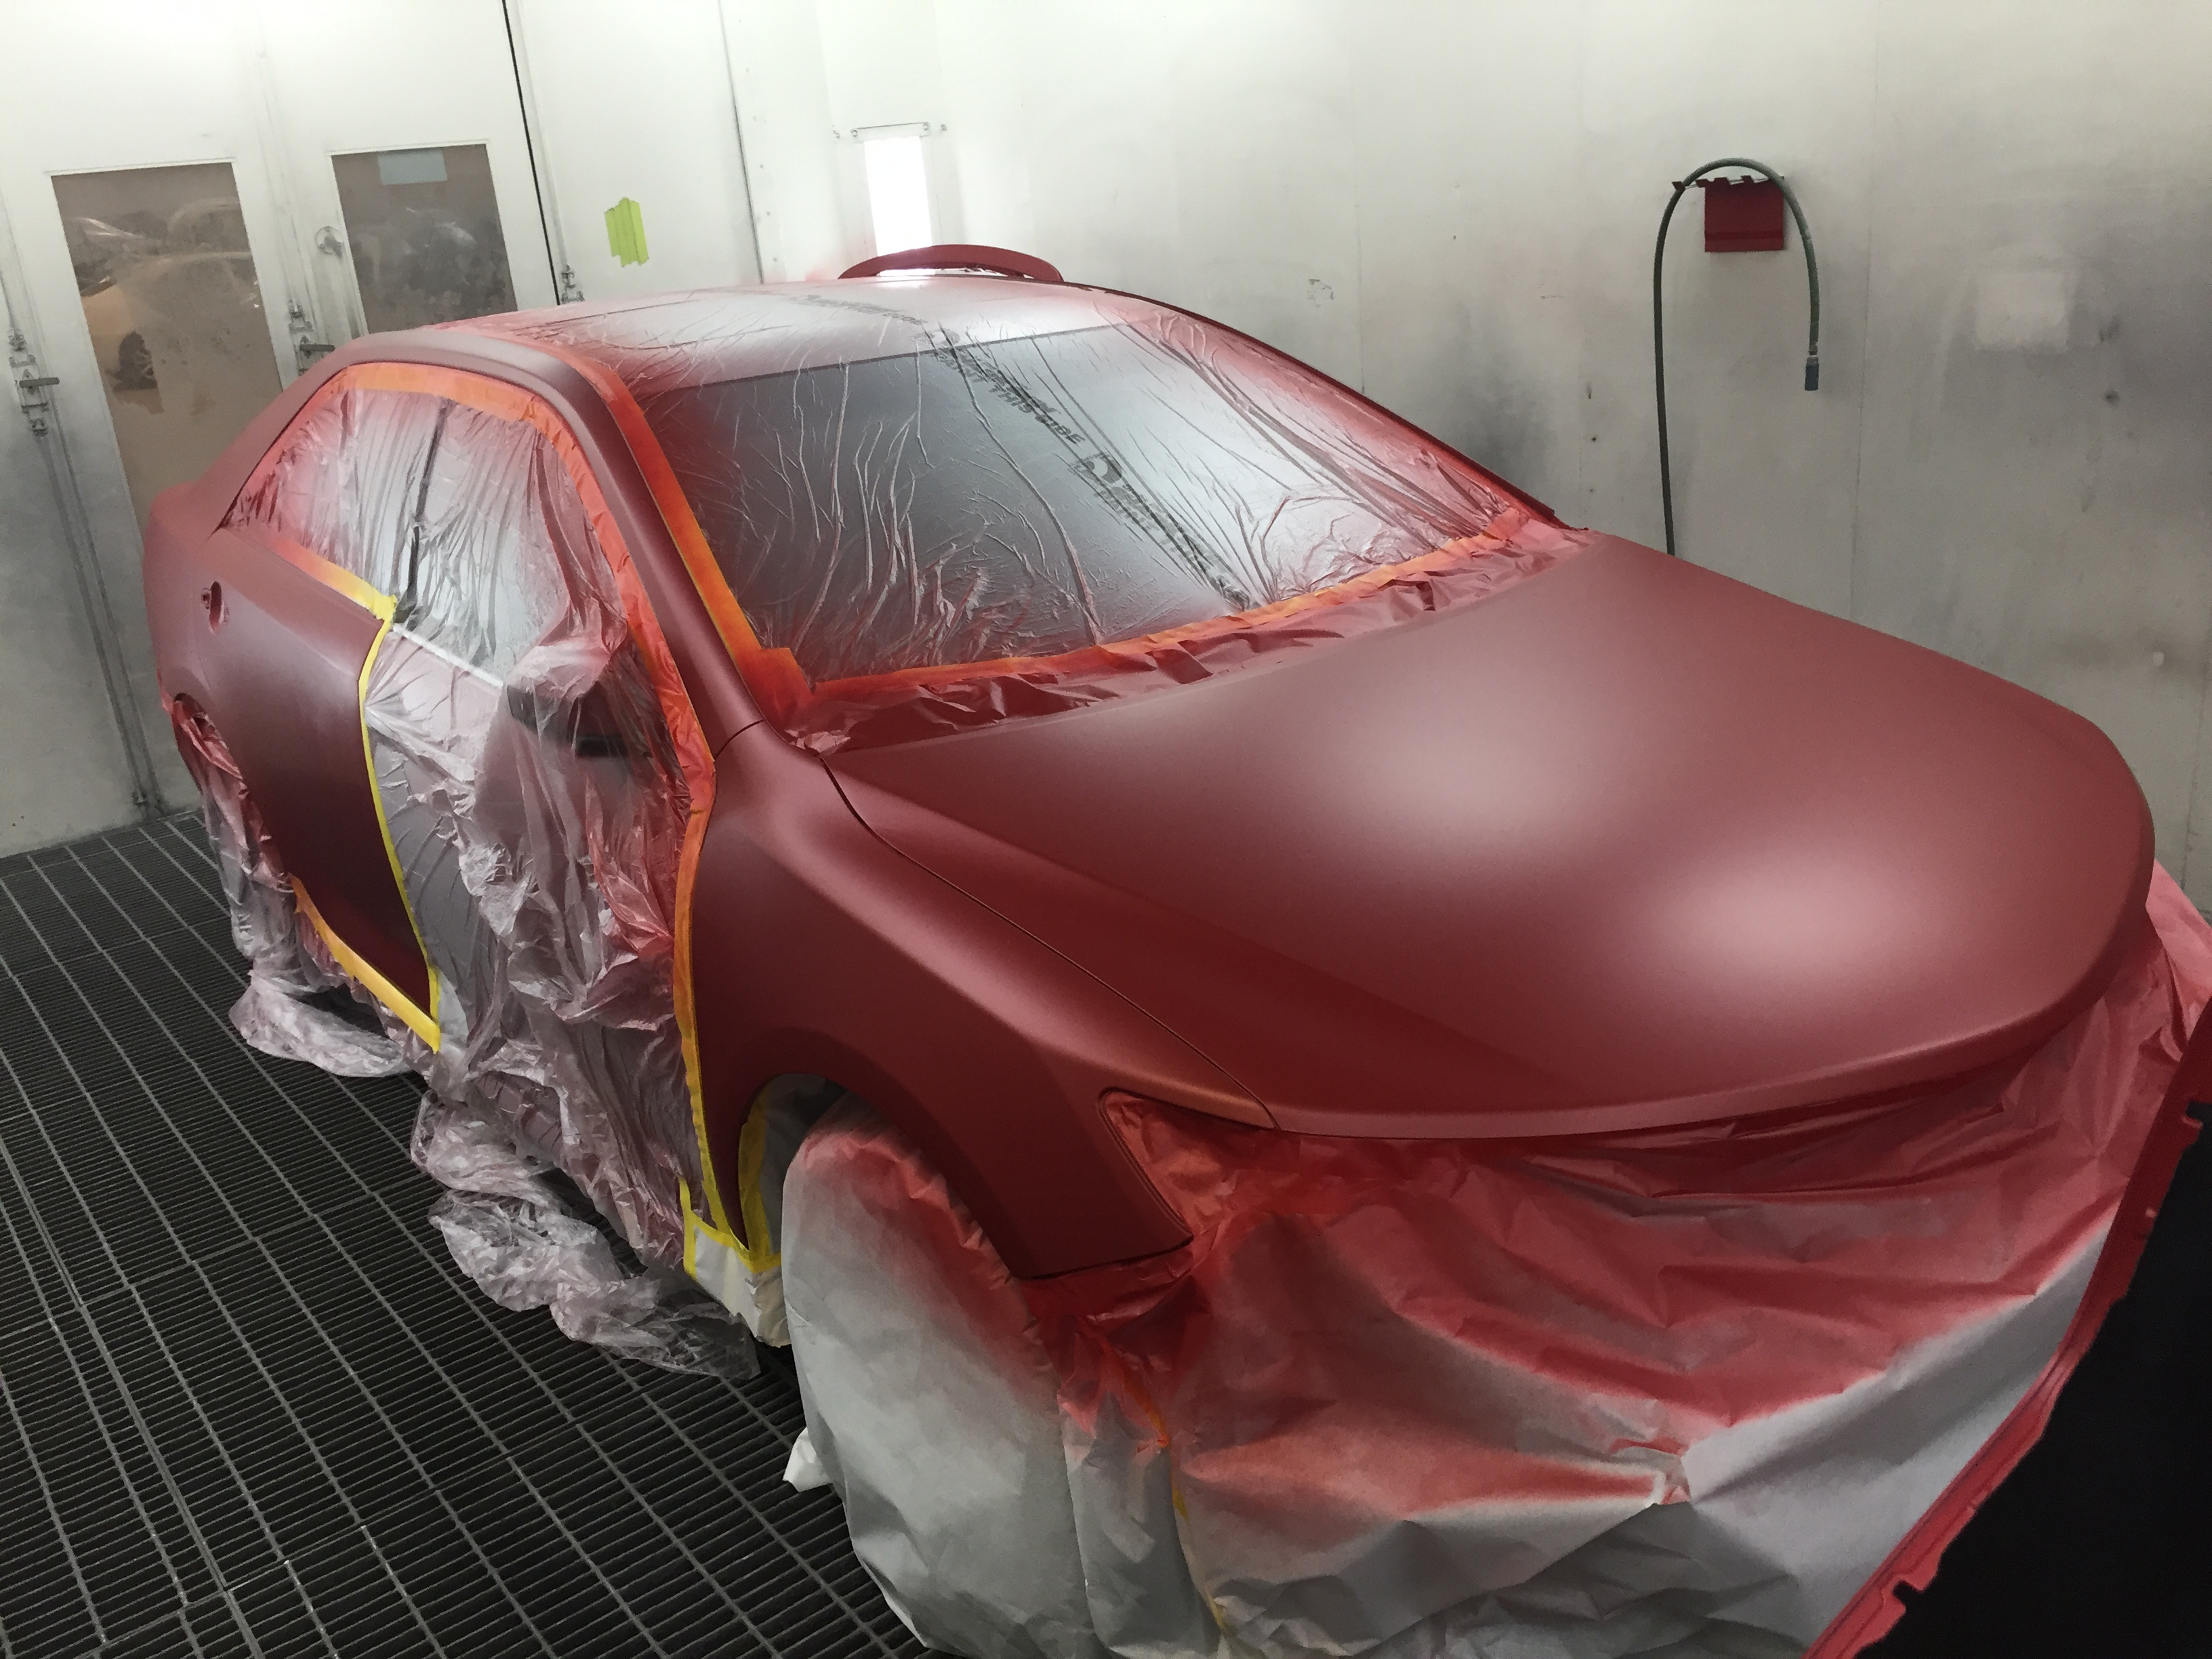 Capital Toyota Body Shop and Collision Center - Paint Booth - Chattanooga TN.jpg